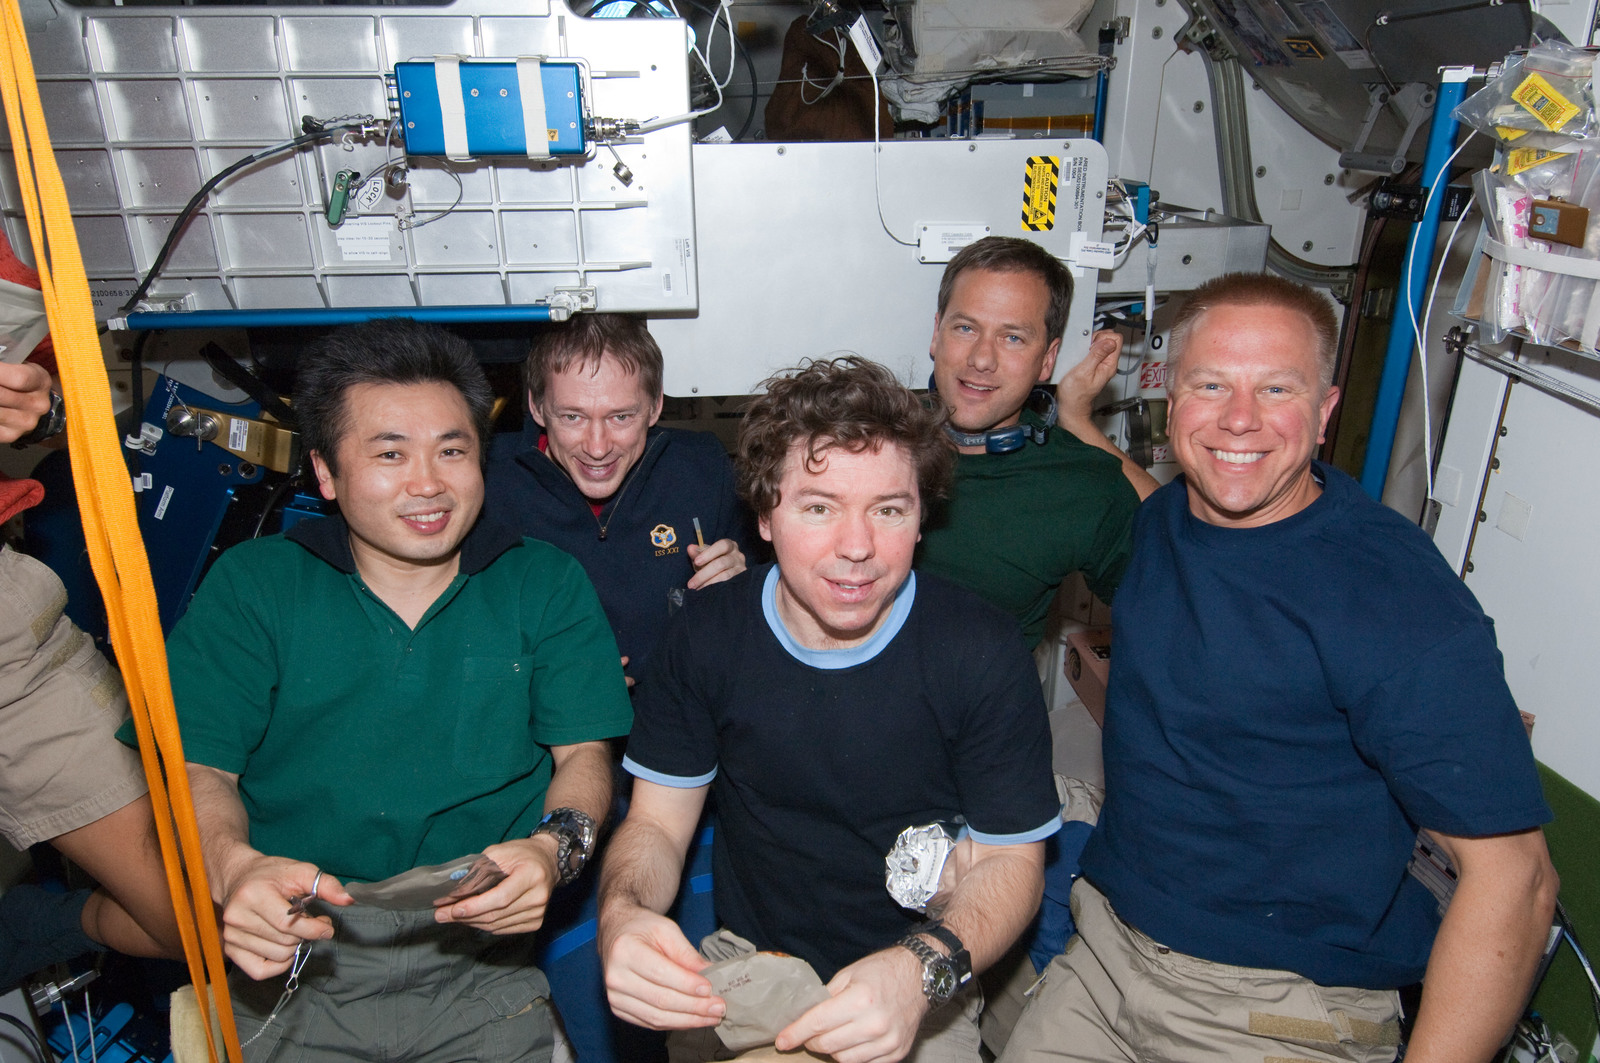 S127E007478 - STS-127 - STS-127 / Expedition 20 Crewmembers in the Node 1 during Joint Operations